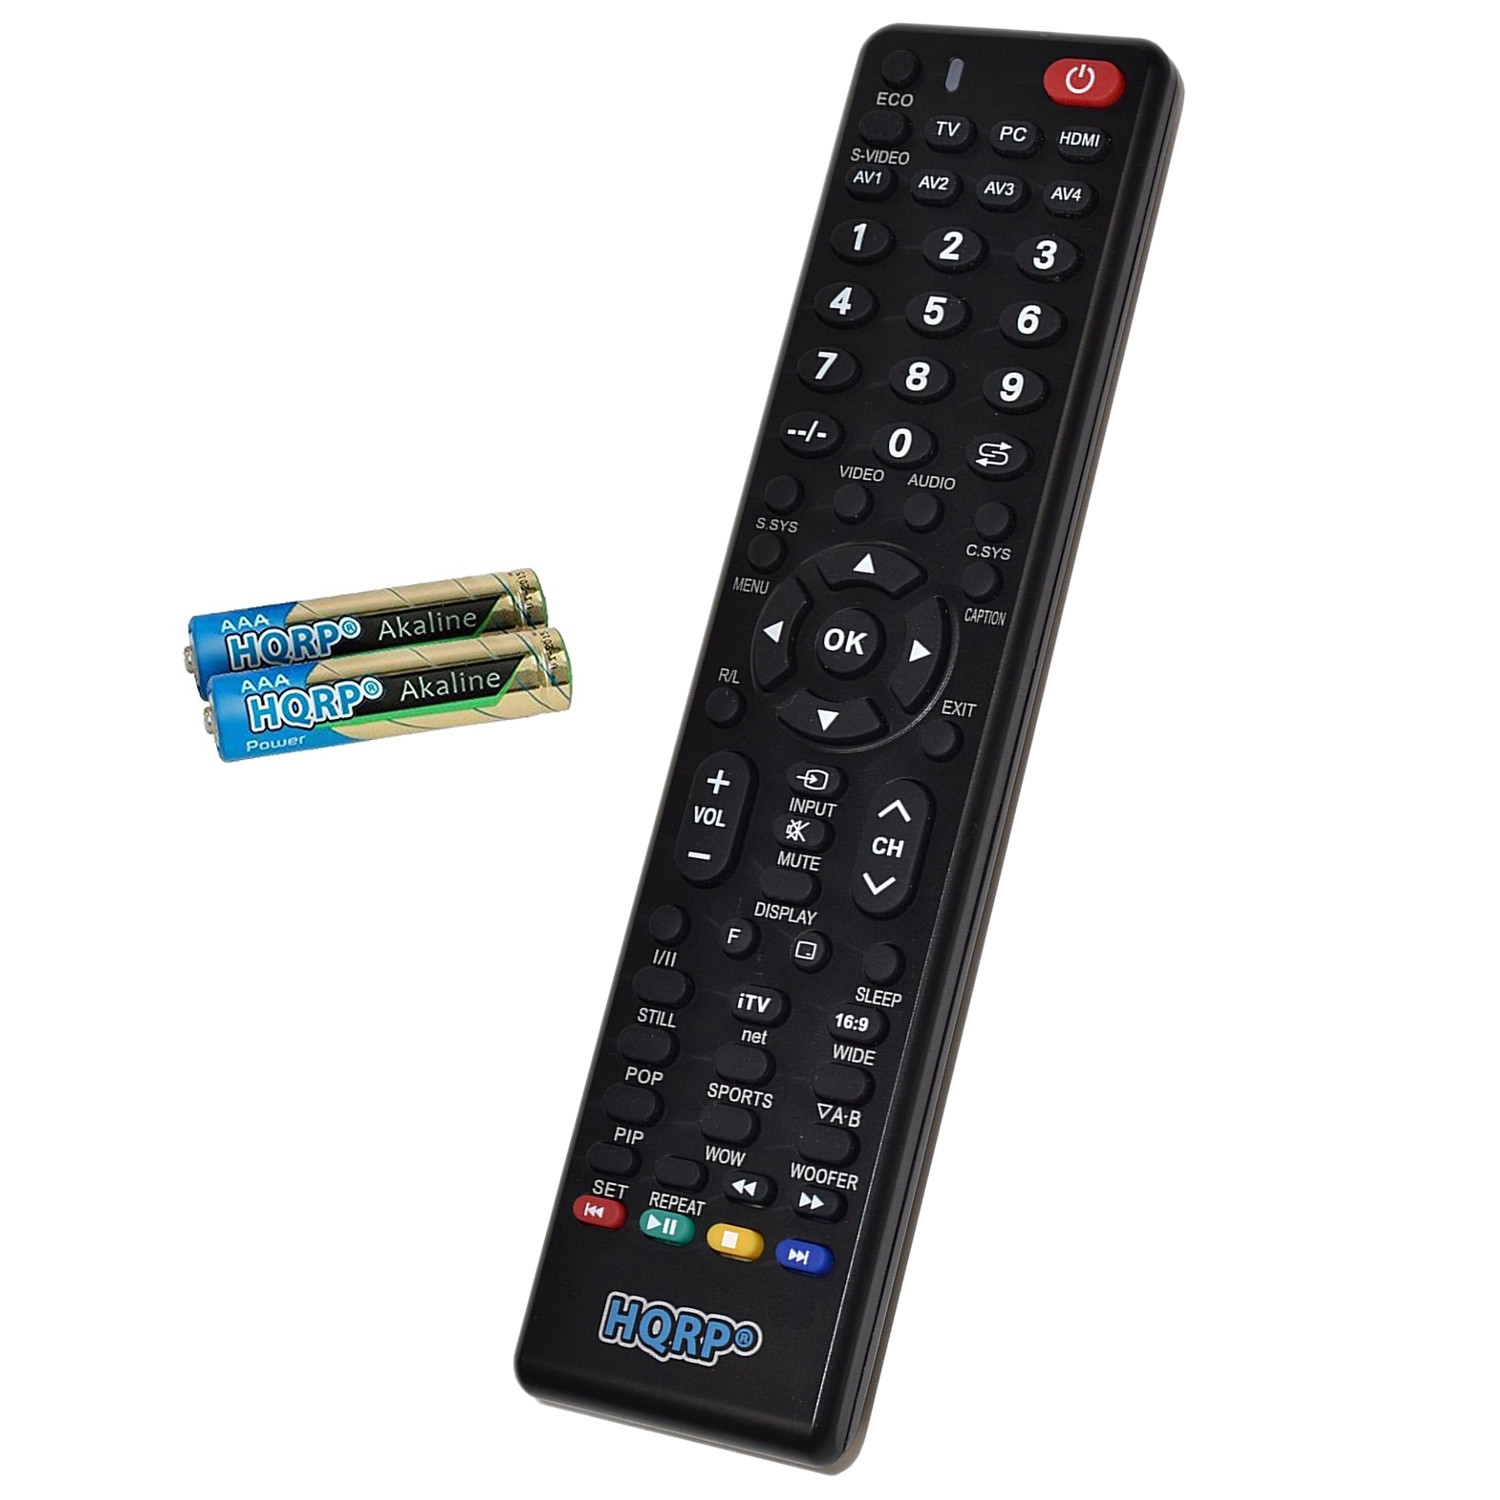 HQRP Remote Control for Sanyo DP50E44, DP50E84, DP52440, DP52449 LCD LED HD TV Smart 1080p 3D Ultra 4K + HQRP Coaster